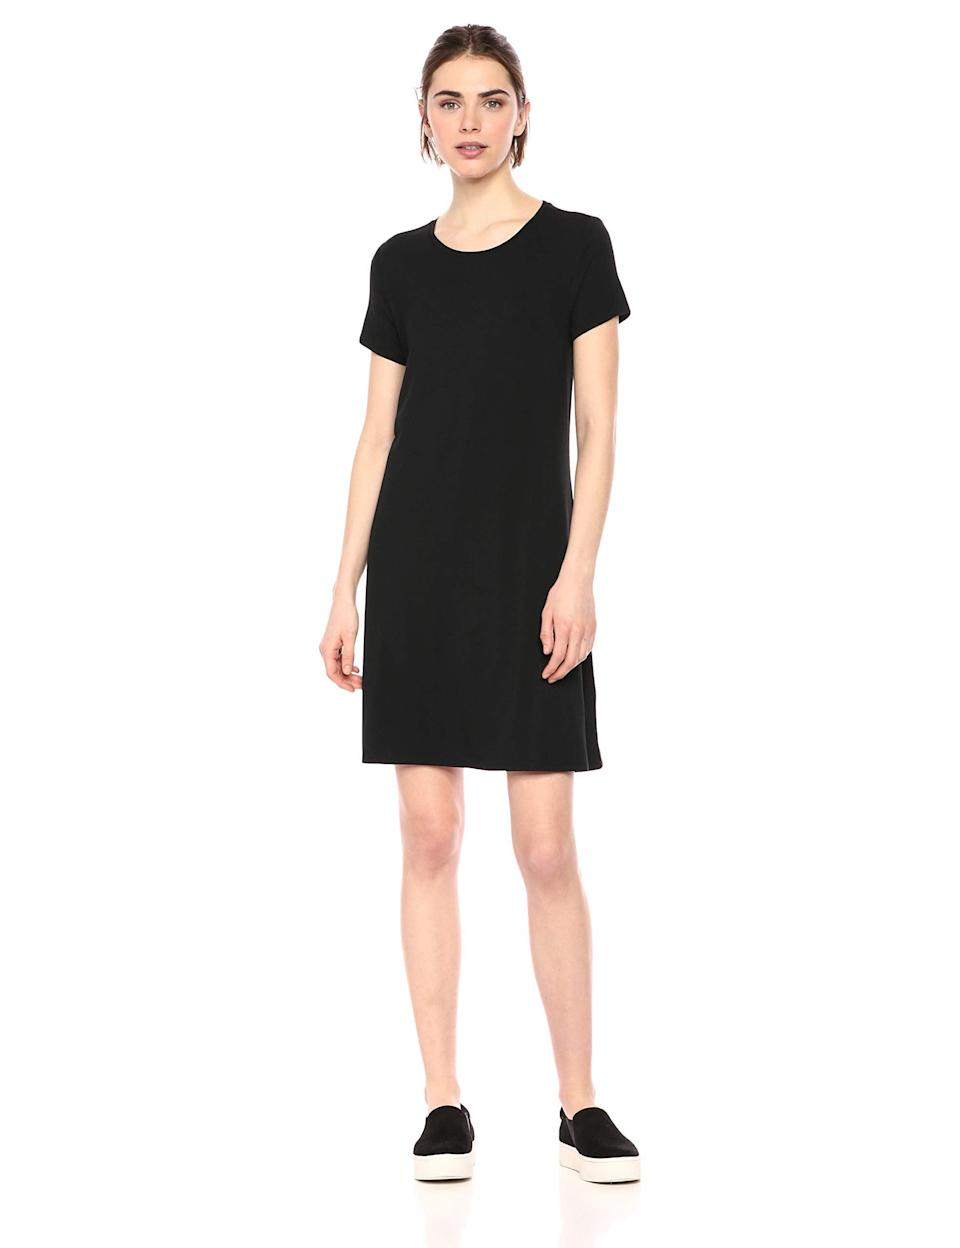 """<h2>Amazon Essentials Short-Sleeve Scoopneck A-line Dress</h2><br>One of our readers' cross-seasonal wardrobe workhorses is now a 30% off Amazon Prime Day bestseller — one reviewer loved this easy t-shirt dress style SO much that she ordered two: """"I needed a simple dress that I could dress up for work or down for just hanging around the house. I used the Prime Wardrobe feature and ordered 3 dresses to try on. When I put this one on my husband happened to come in, the first words out of his mouth were 'that's an awesome dress.' I sent the other two back and ordered another one of these in a different color.""""<br><br><strong>4.5 out of 5 stars and 2,158 reviews</strong><br><br><strong>Amazon Essentials</strong> Short Sleeve Scoopneck A-line Dress, $, available at <a href=""""https://amzn.to/3iTzsgs"""" rel=""""nofollow noopener"""" target=""""_blank"""" data-ylk=""""slk:Amazon"""" class=""""link rapid-noclick-resp"""">Amazon</a>"""